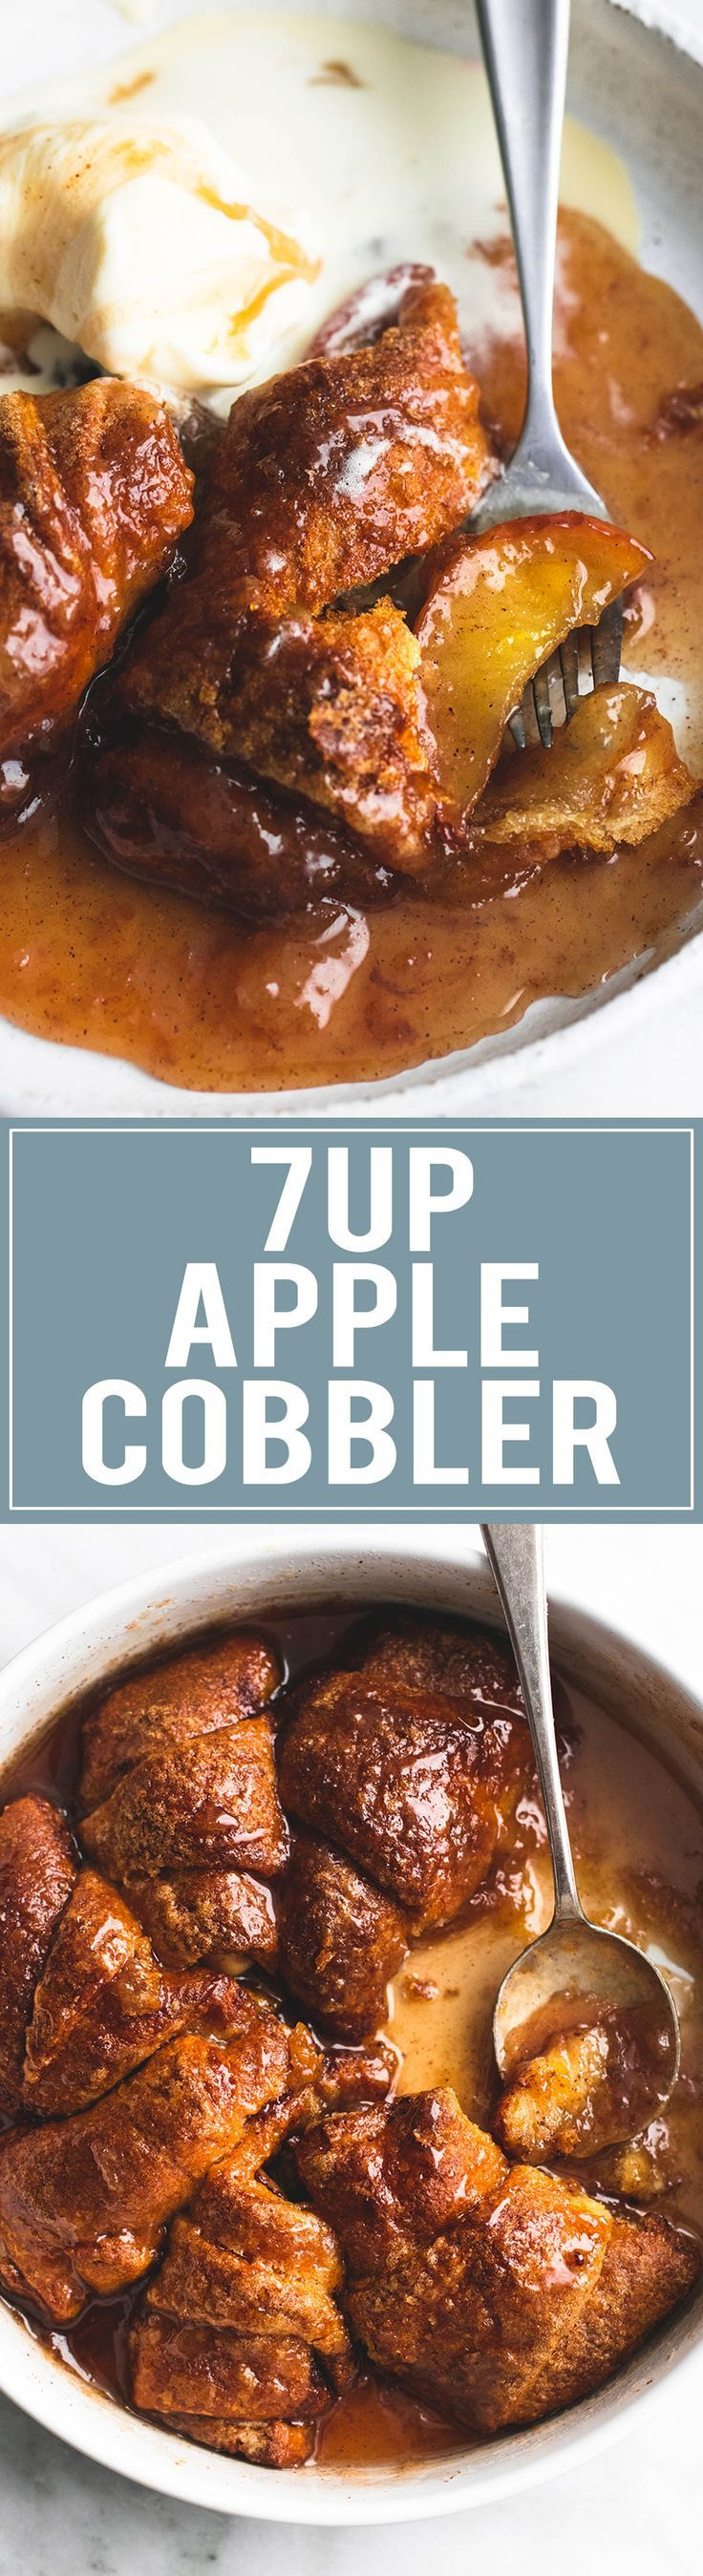 7UP Apple Cobbler - 7UP soda and refrigerated crescent dough turn apple cobbler into a super simple and delicious dessert!   http://lecremedelacrumb.com